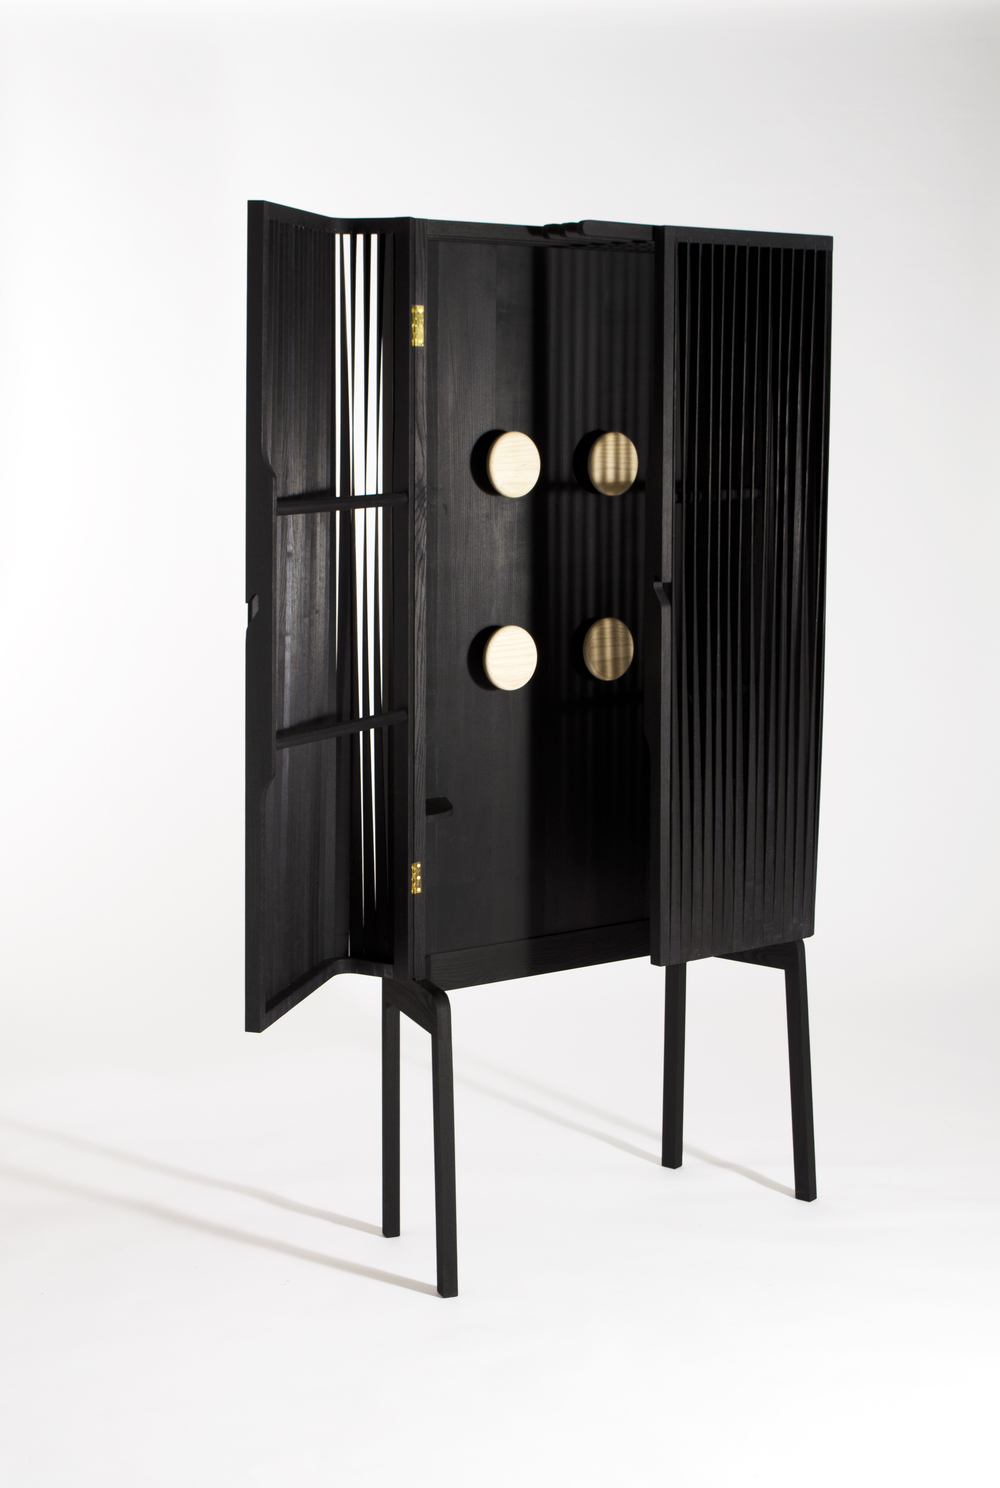 Cabinet by Charlie Styrbjörn Nilsson in collaboration with Olle K Engberg and Ludwig Berg (2).jpg